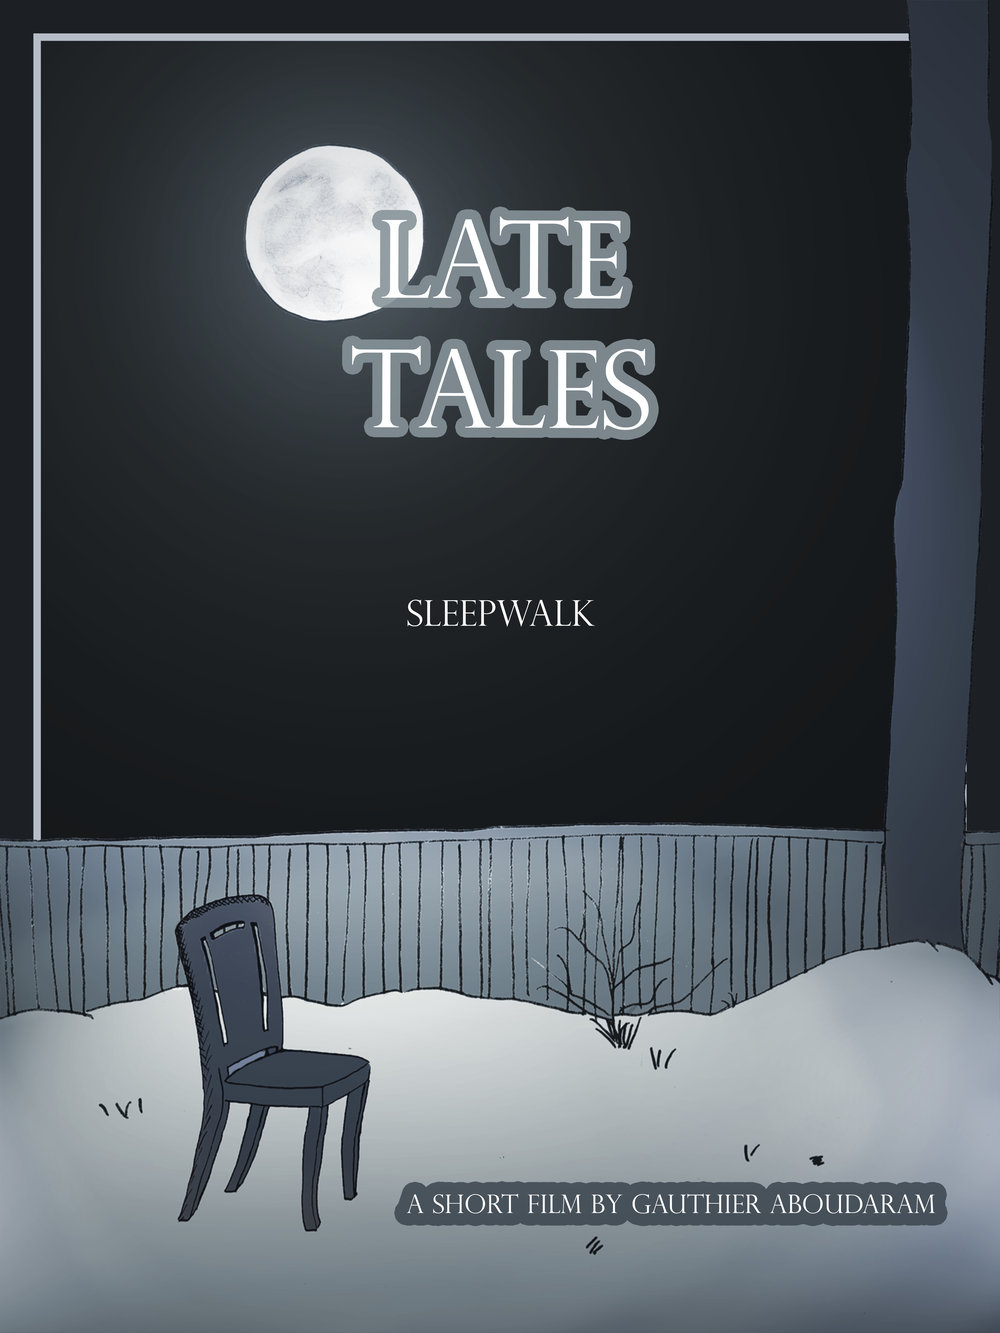 Late Tales Poster 4/4